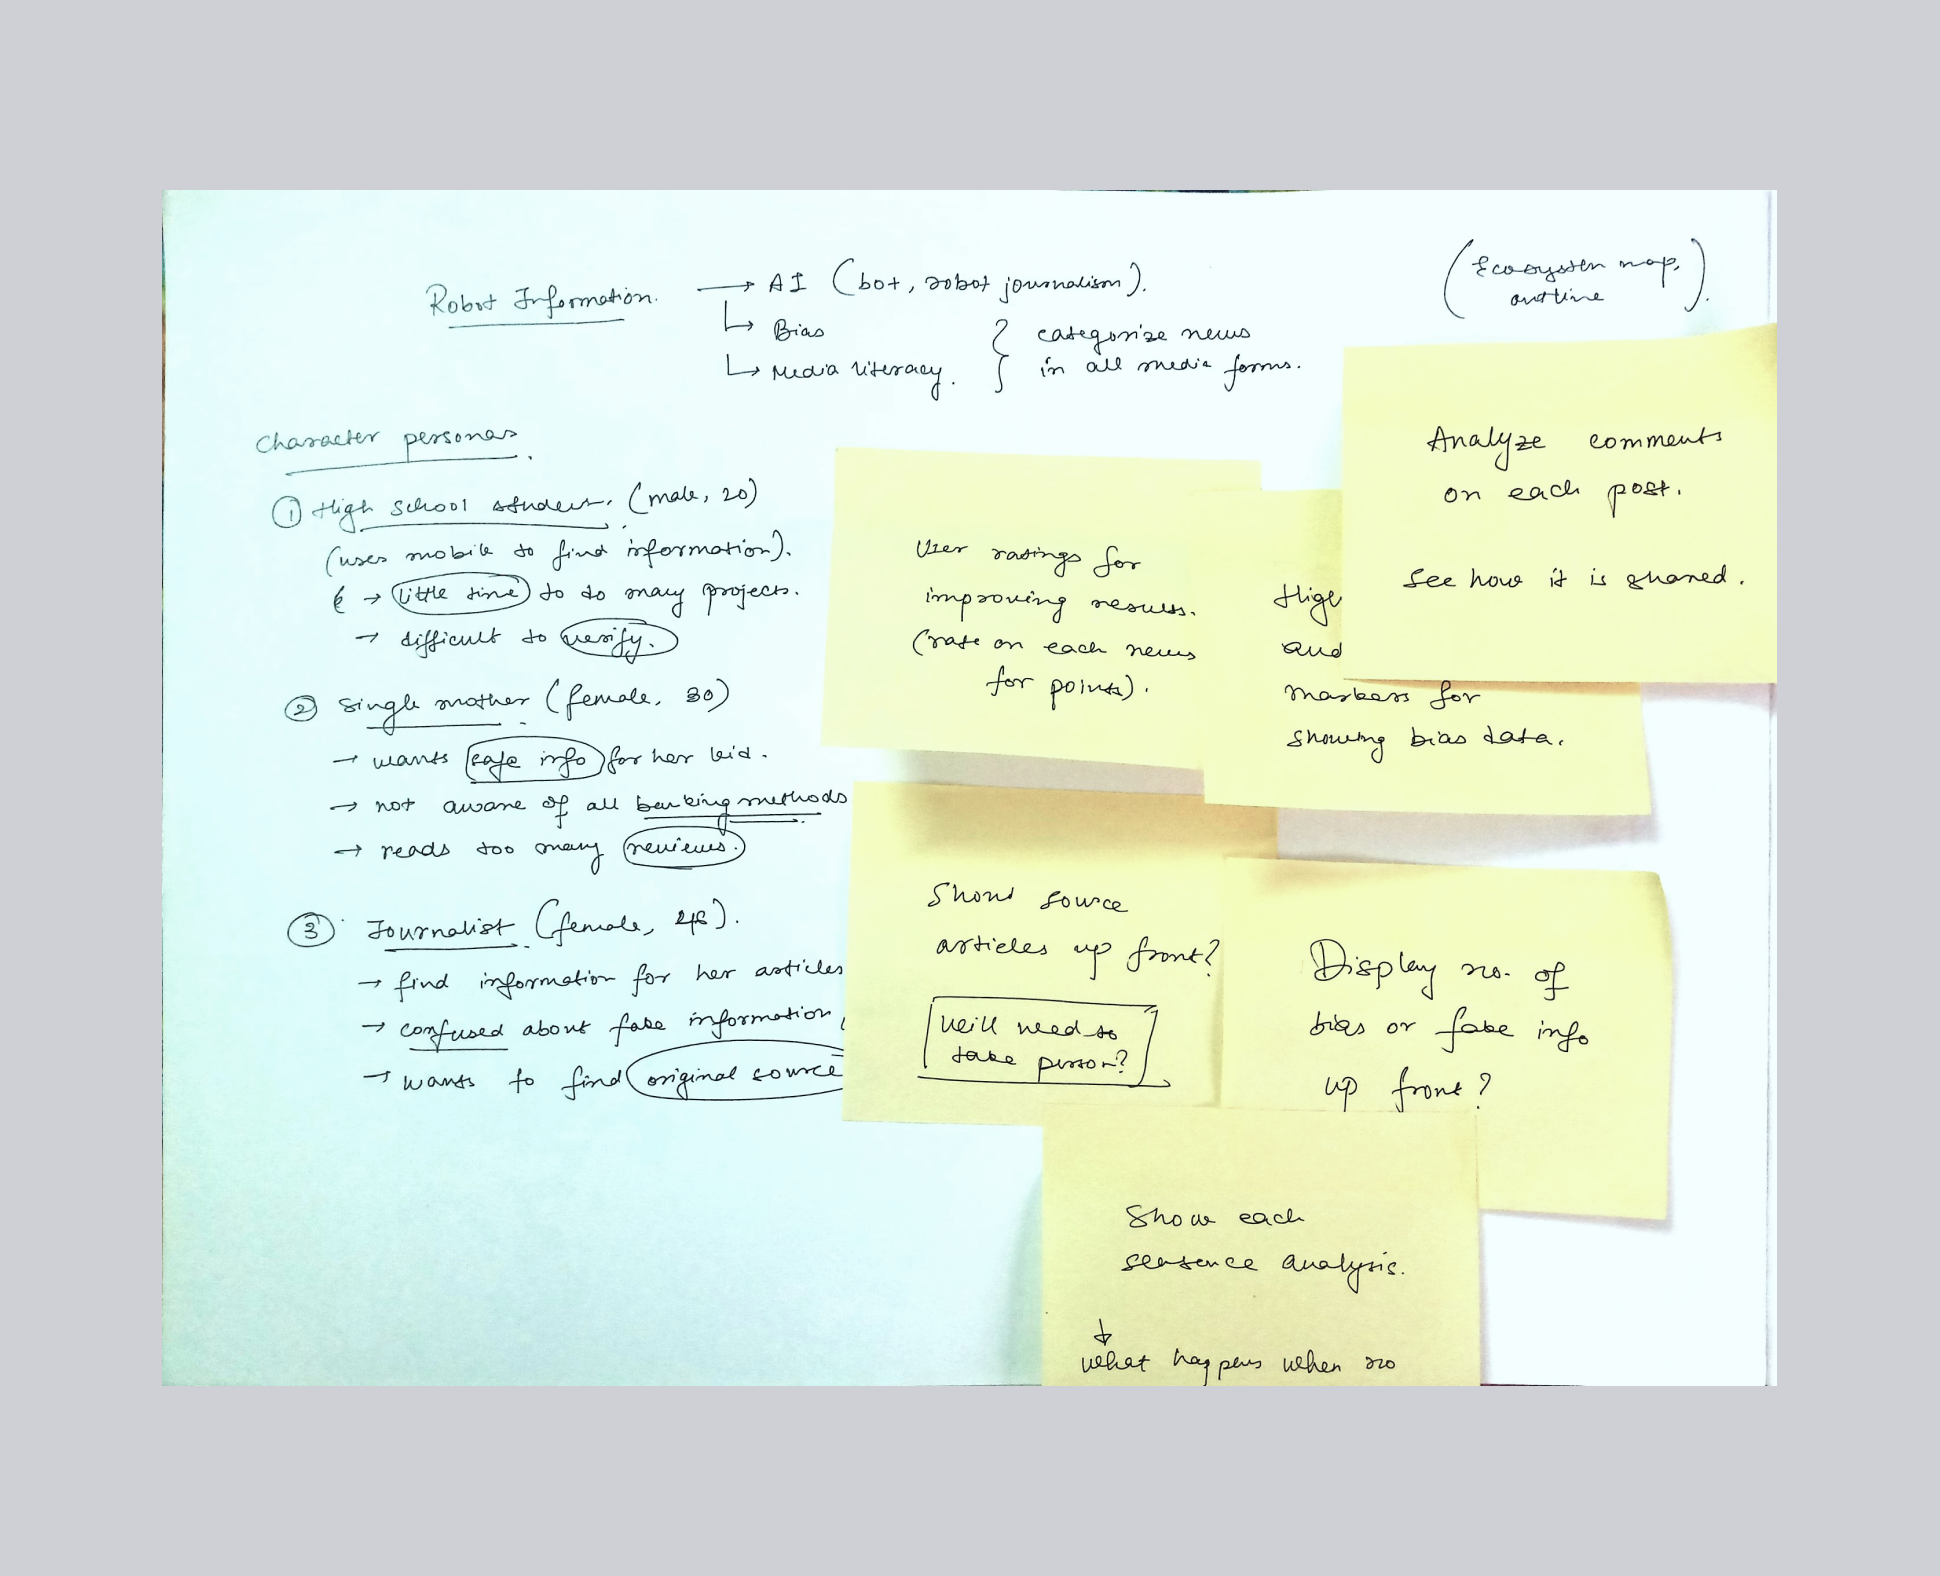 User Research Image